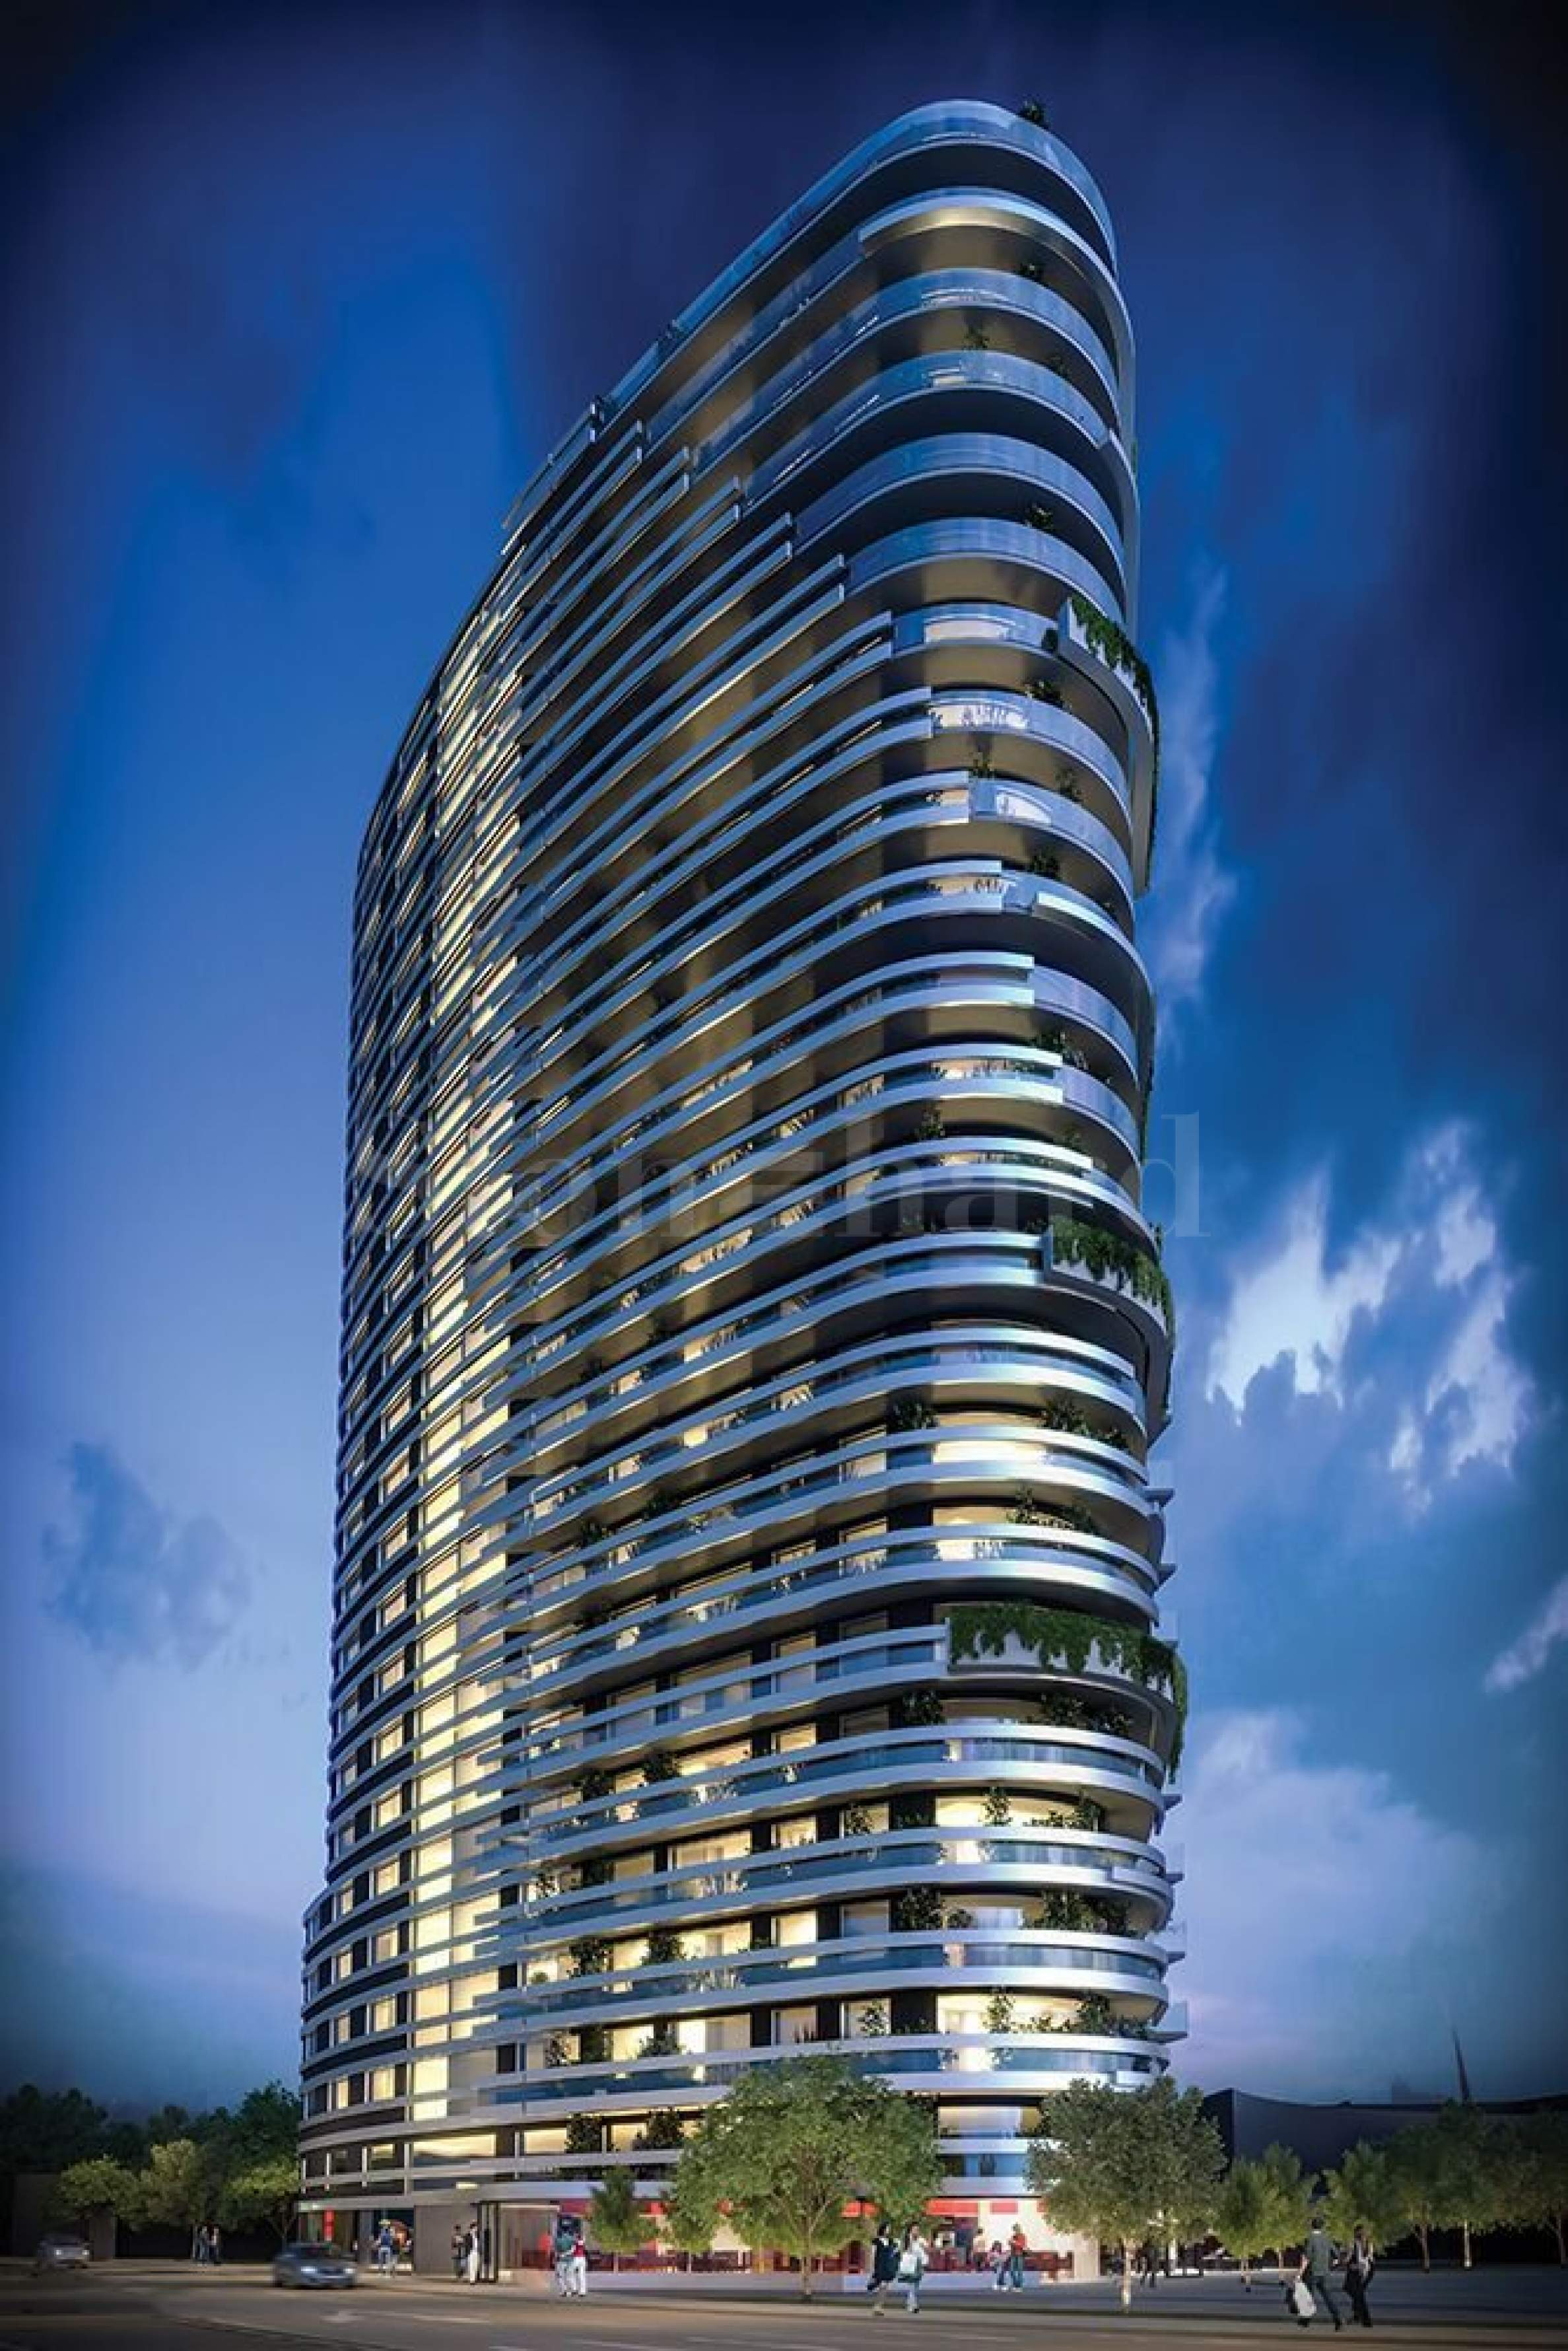 New residential tower near Royal Victoria Dock2 - Stonehard